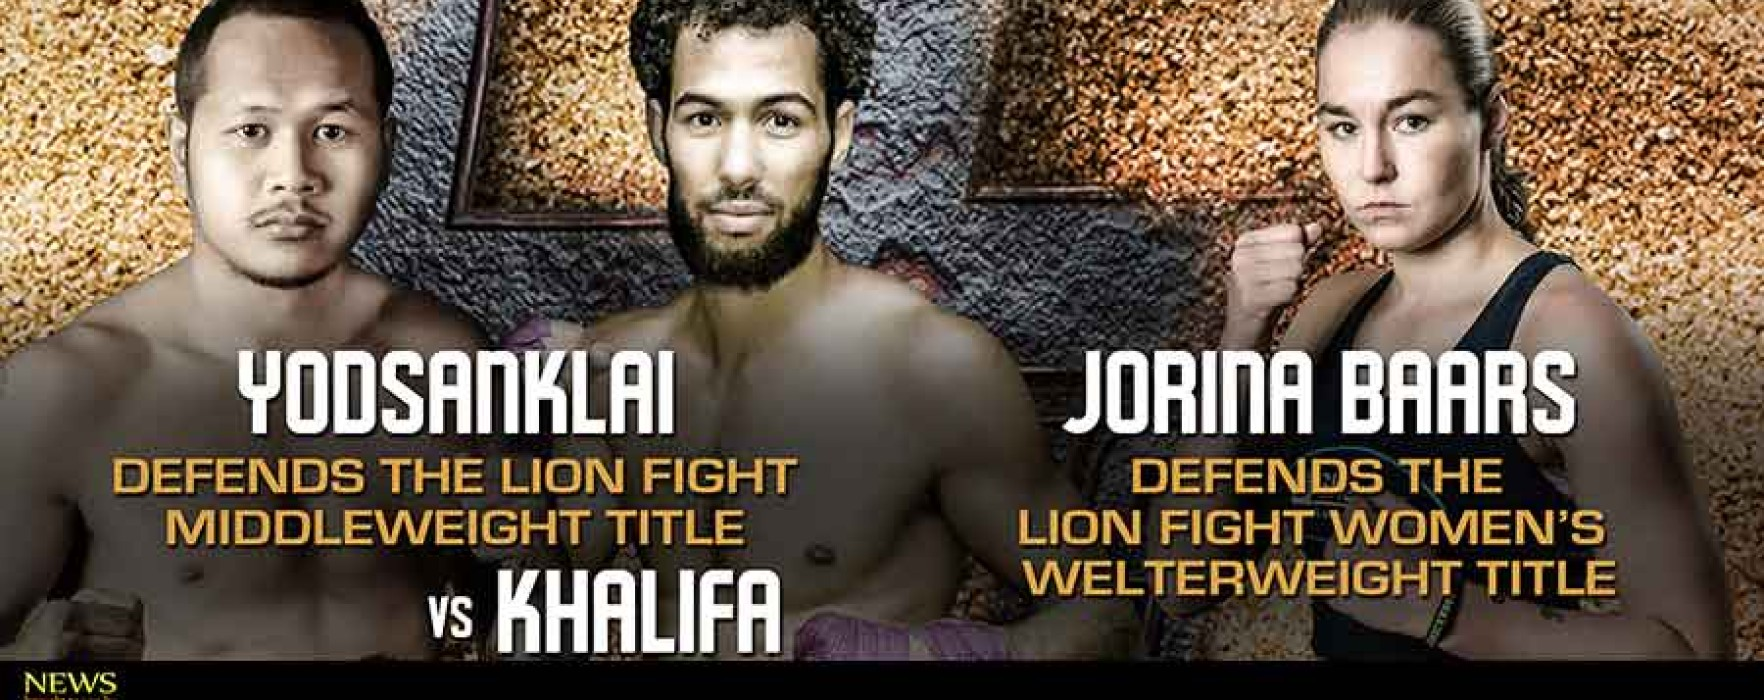 Yodsanklai Fairtex vs Salah Khalifa at Lion Fight 18 – 5th September – USA